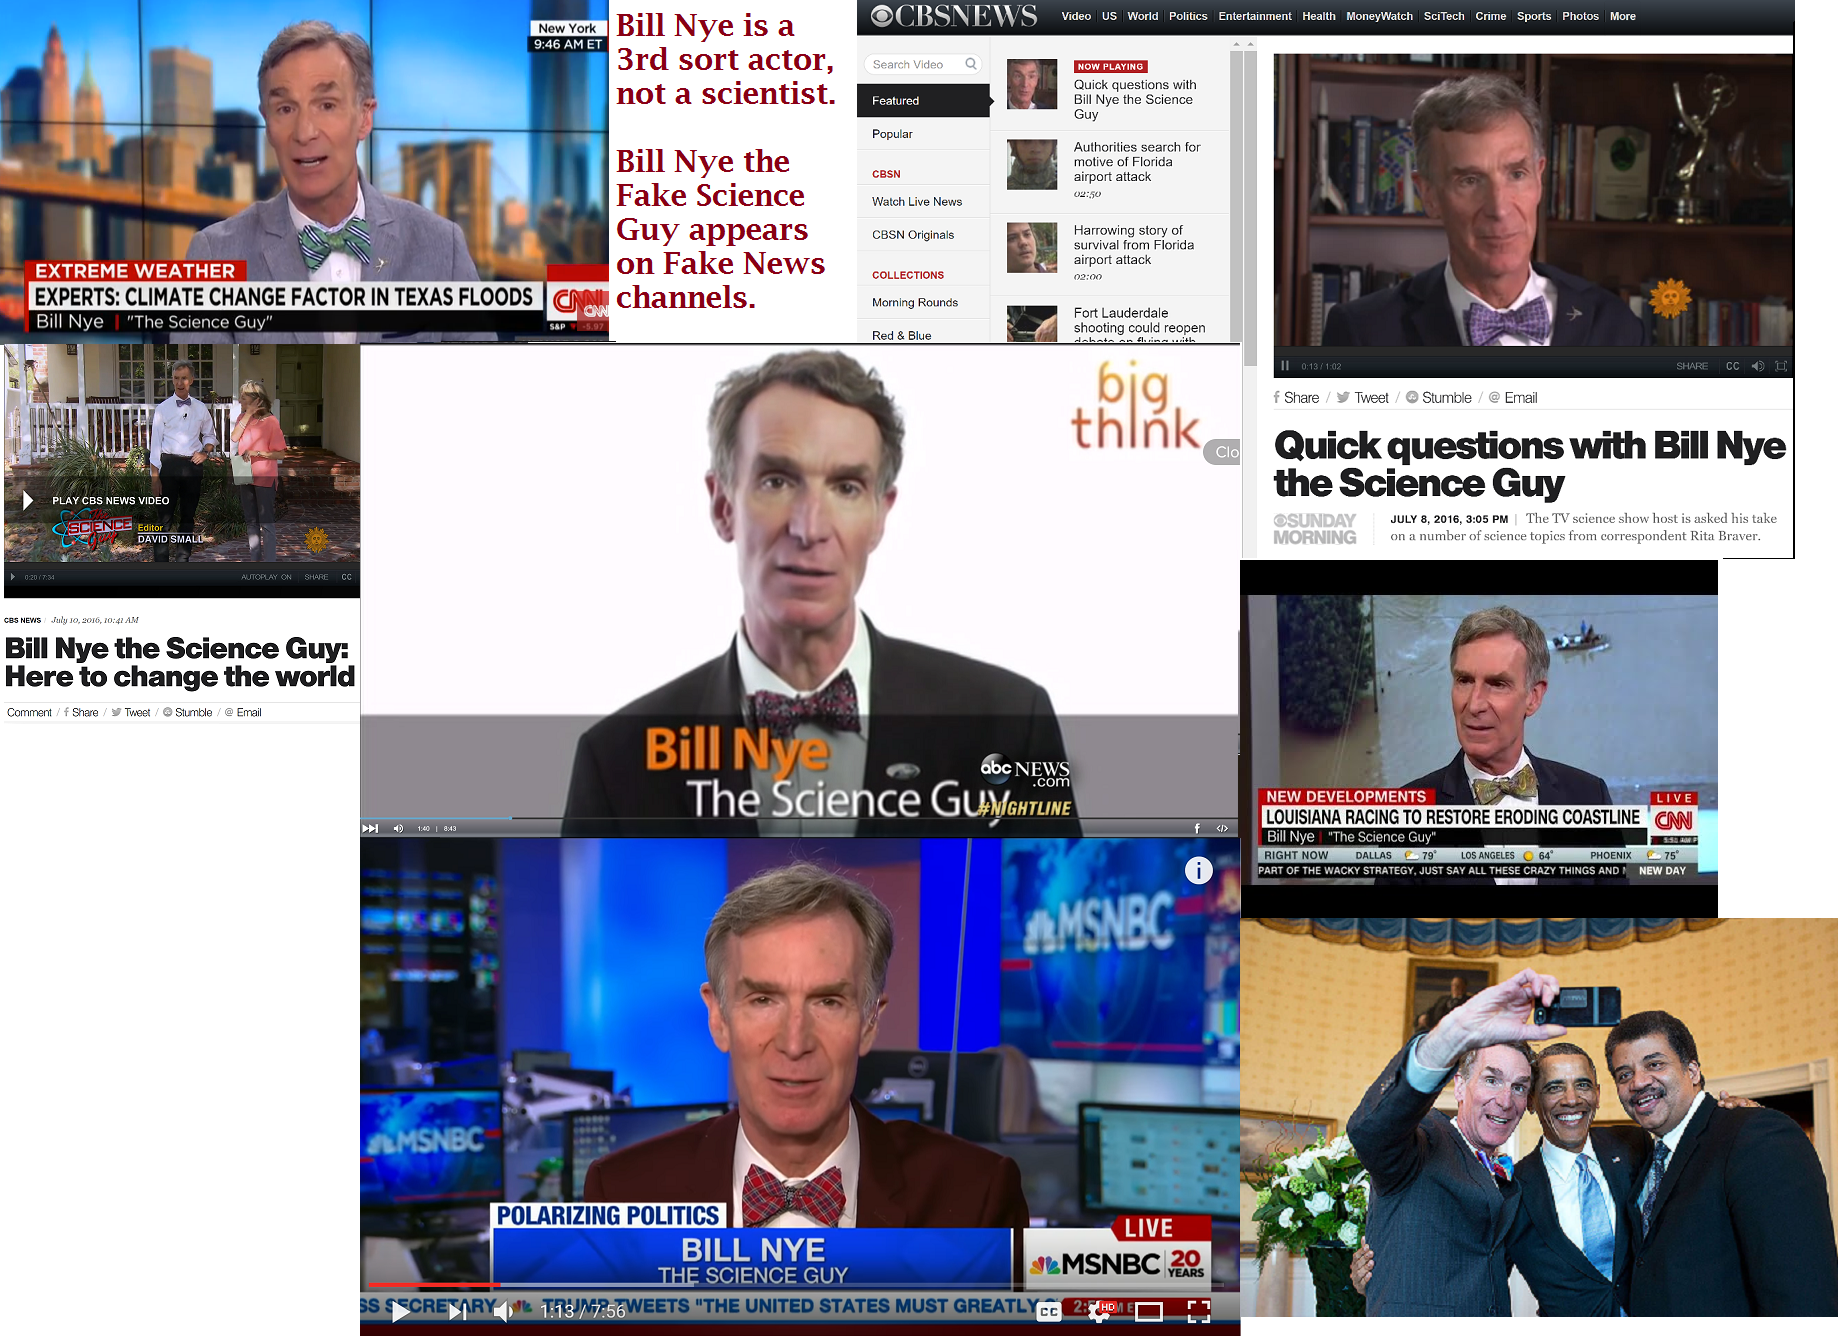 Bill Nye the Fake Science Guy Collage from ABC, CBS, MSNBC, CNN.